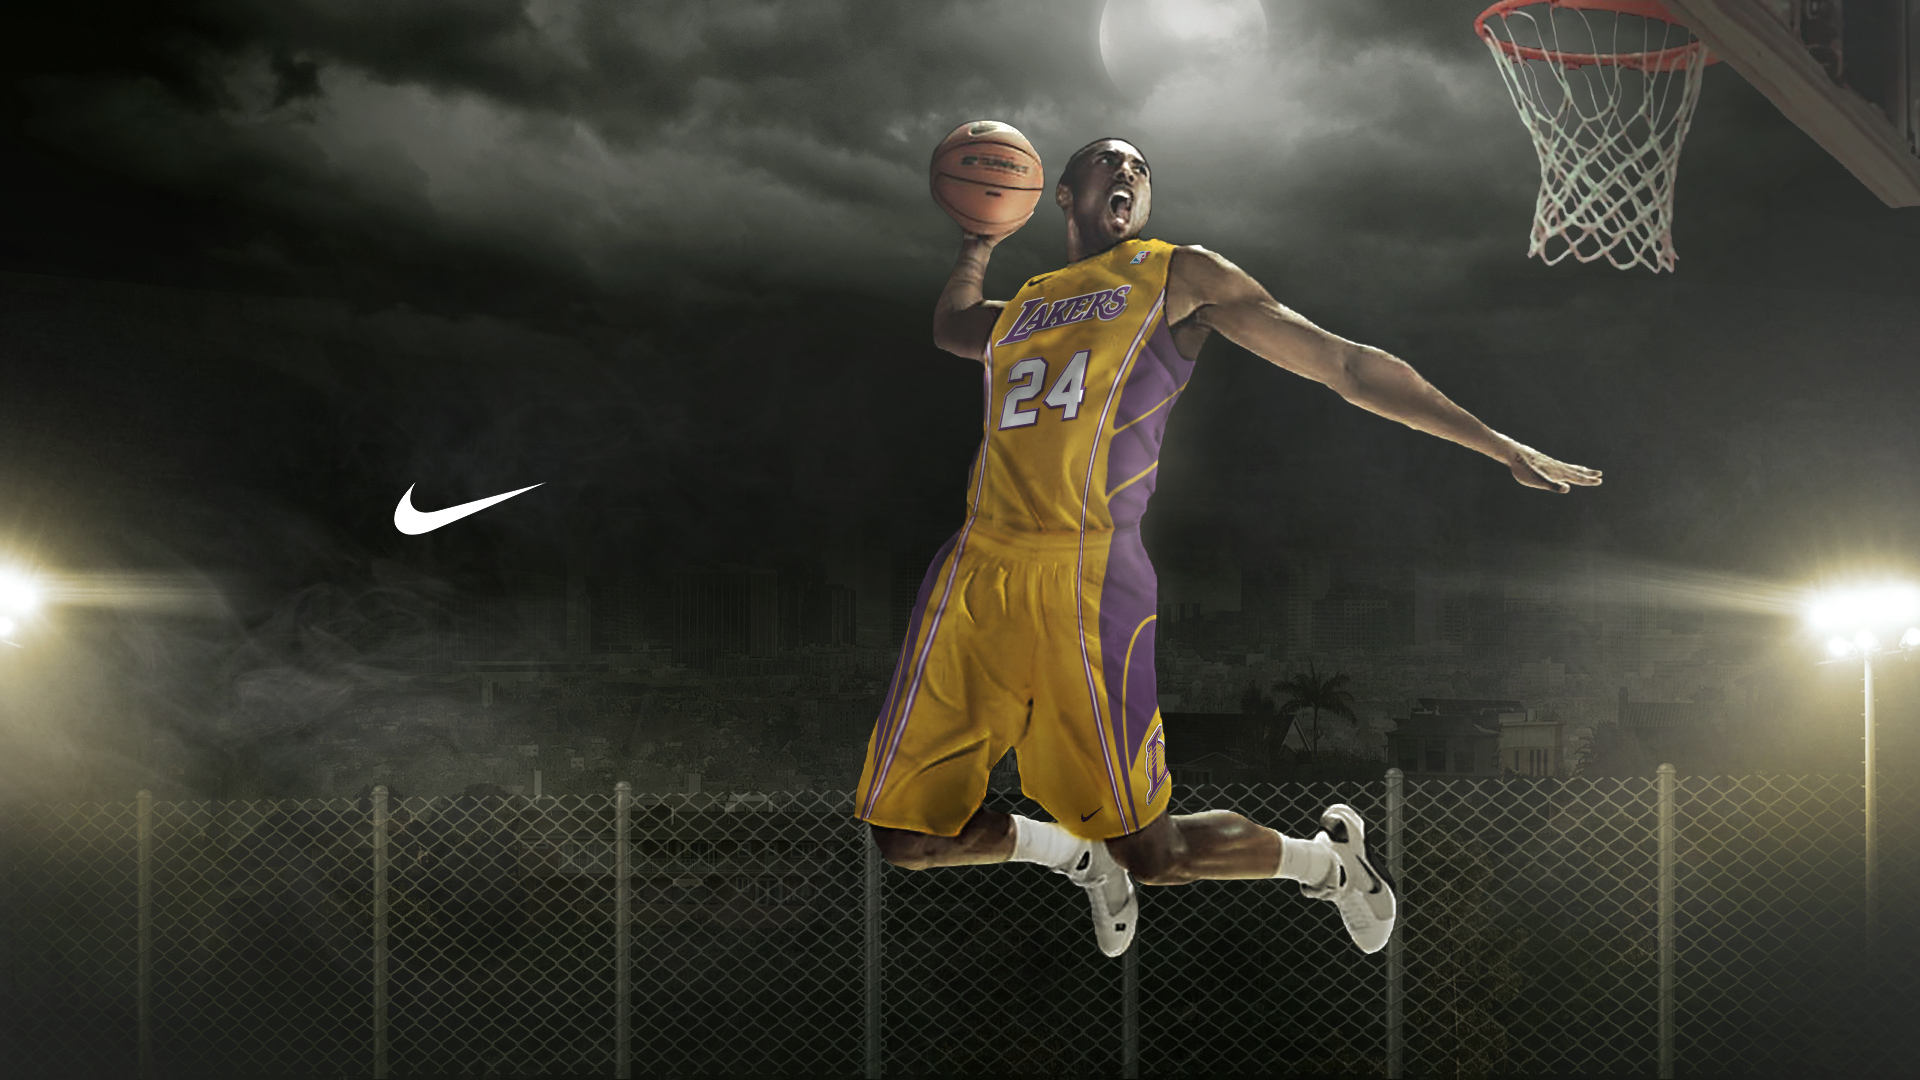 nike_concept_nbs_rendering_2